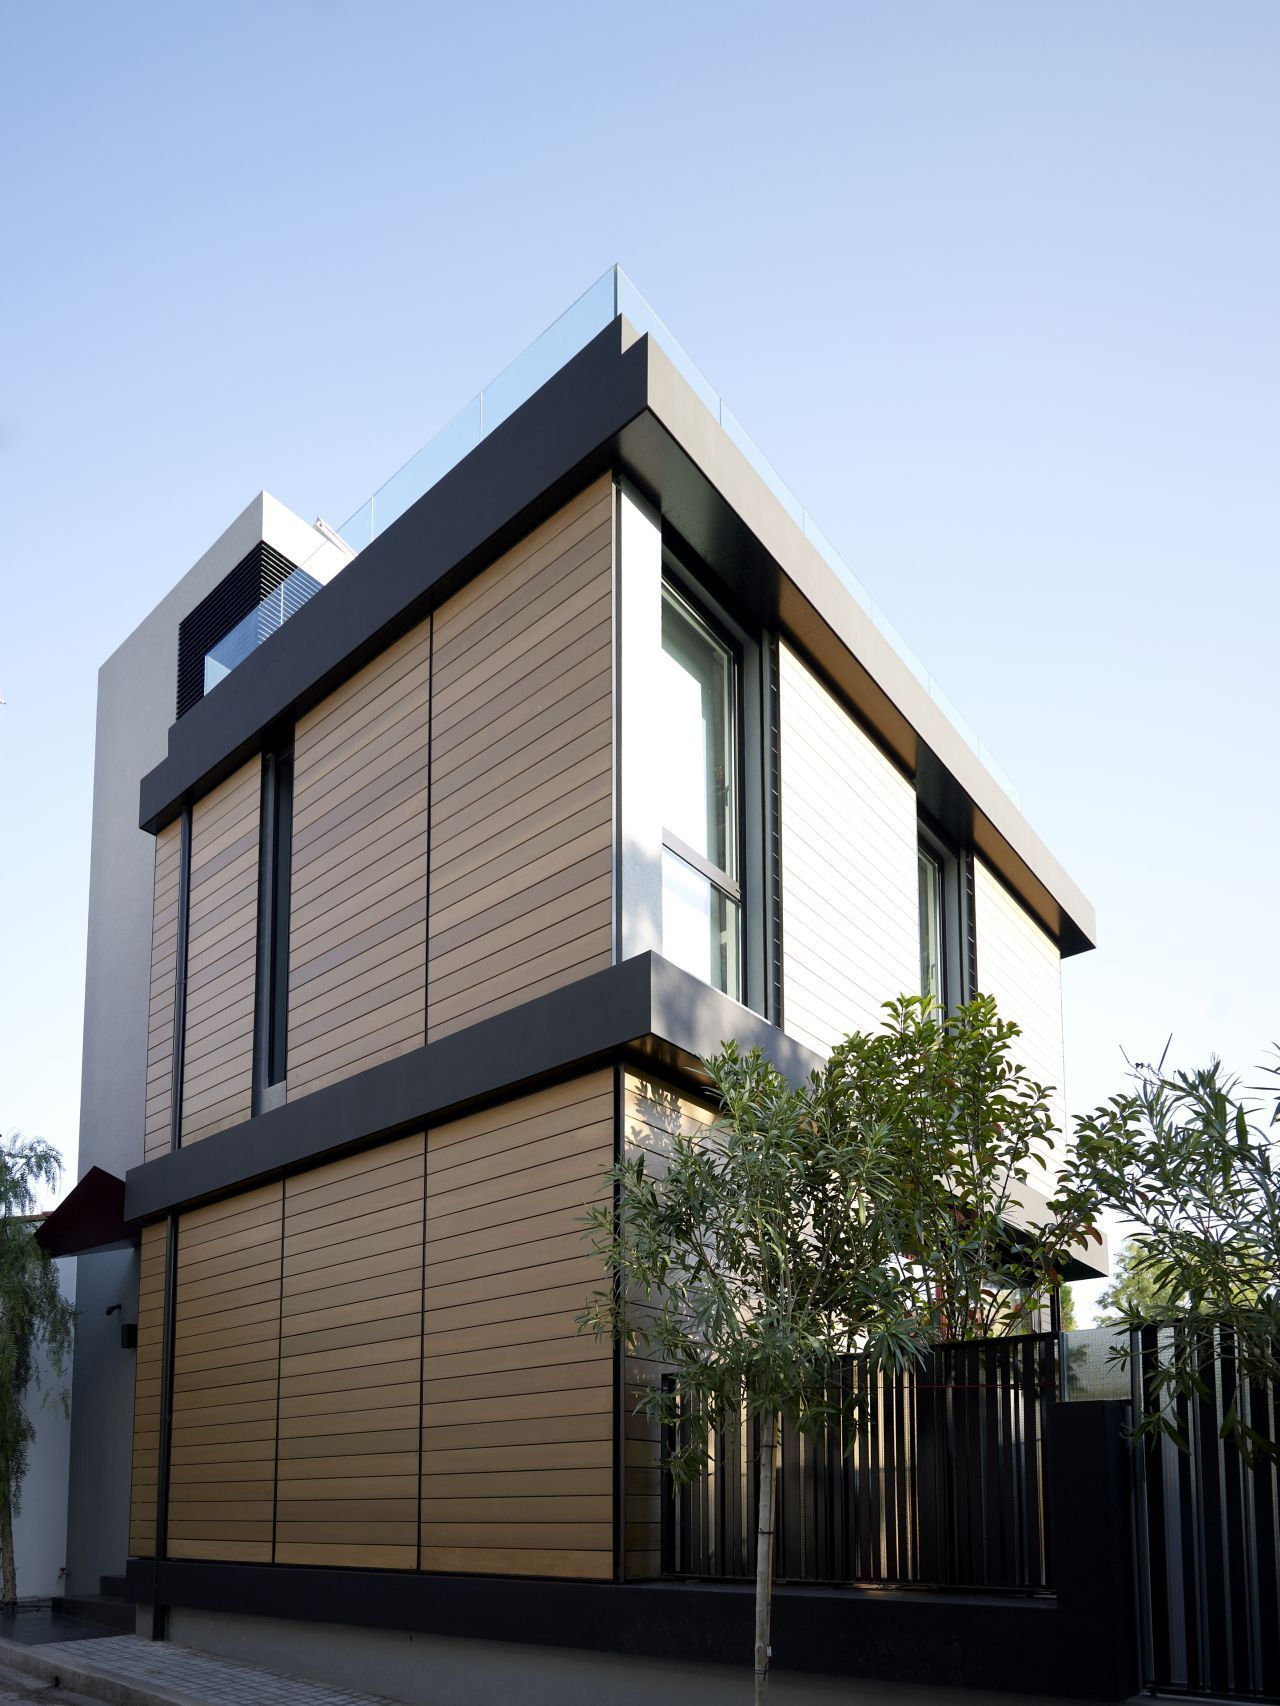 Pin by mohanad alzahrani on house pinterest cladding - Wooden cladding for exterior walls ...